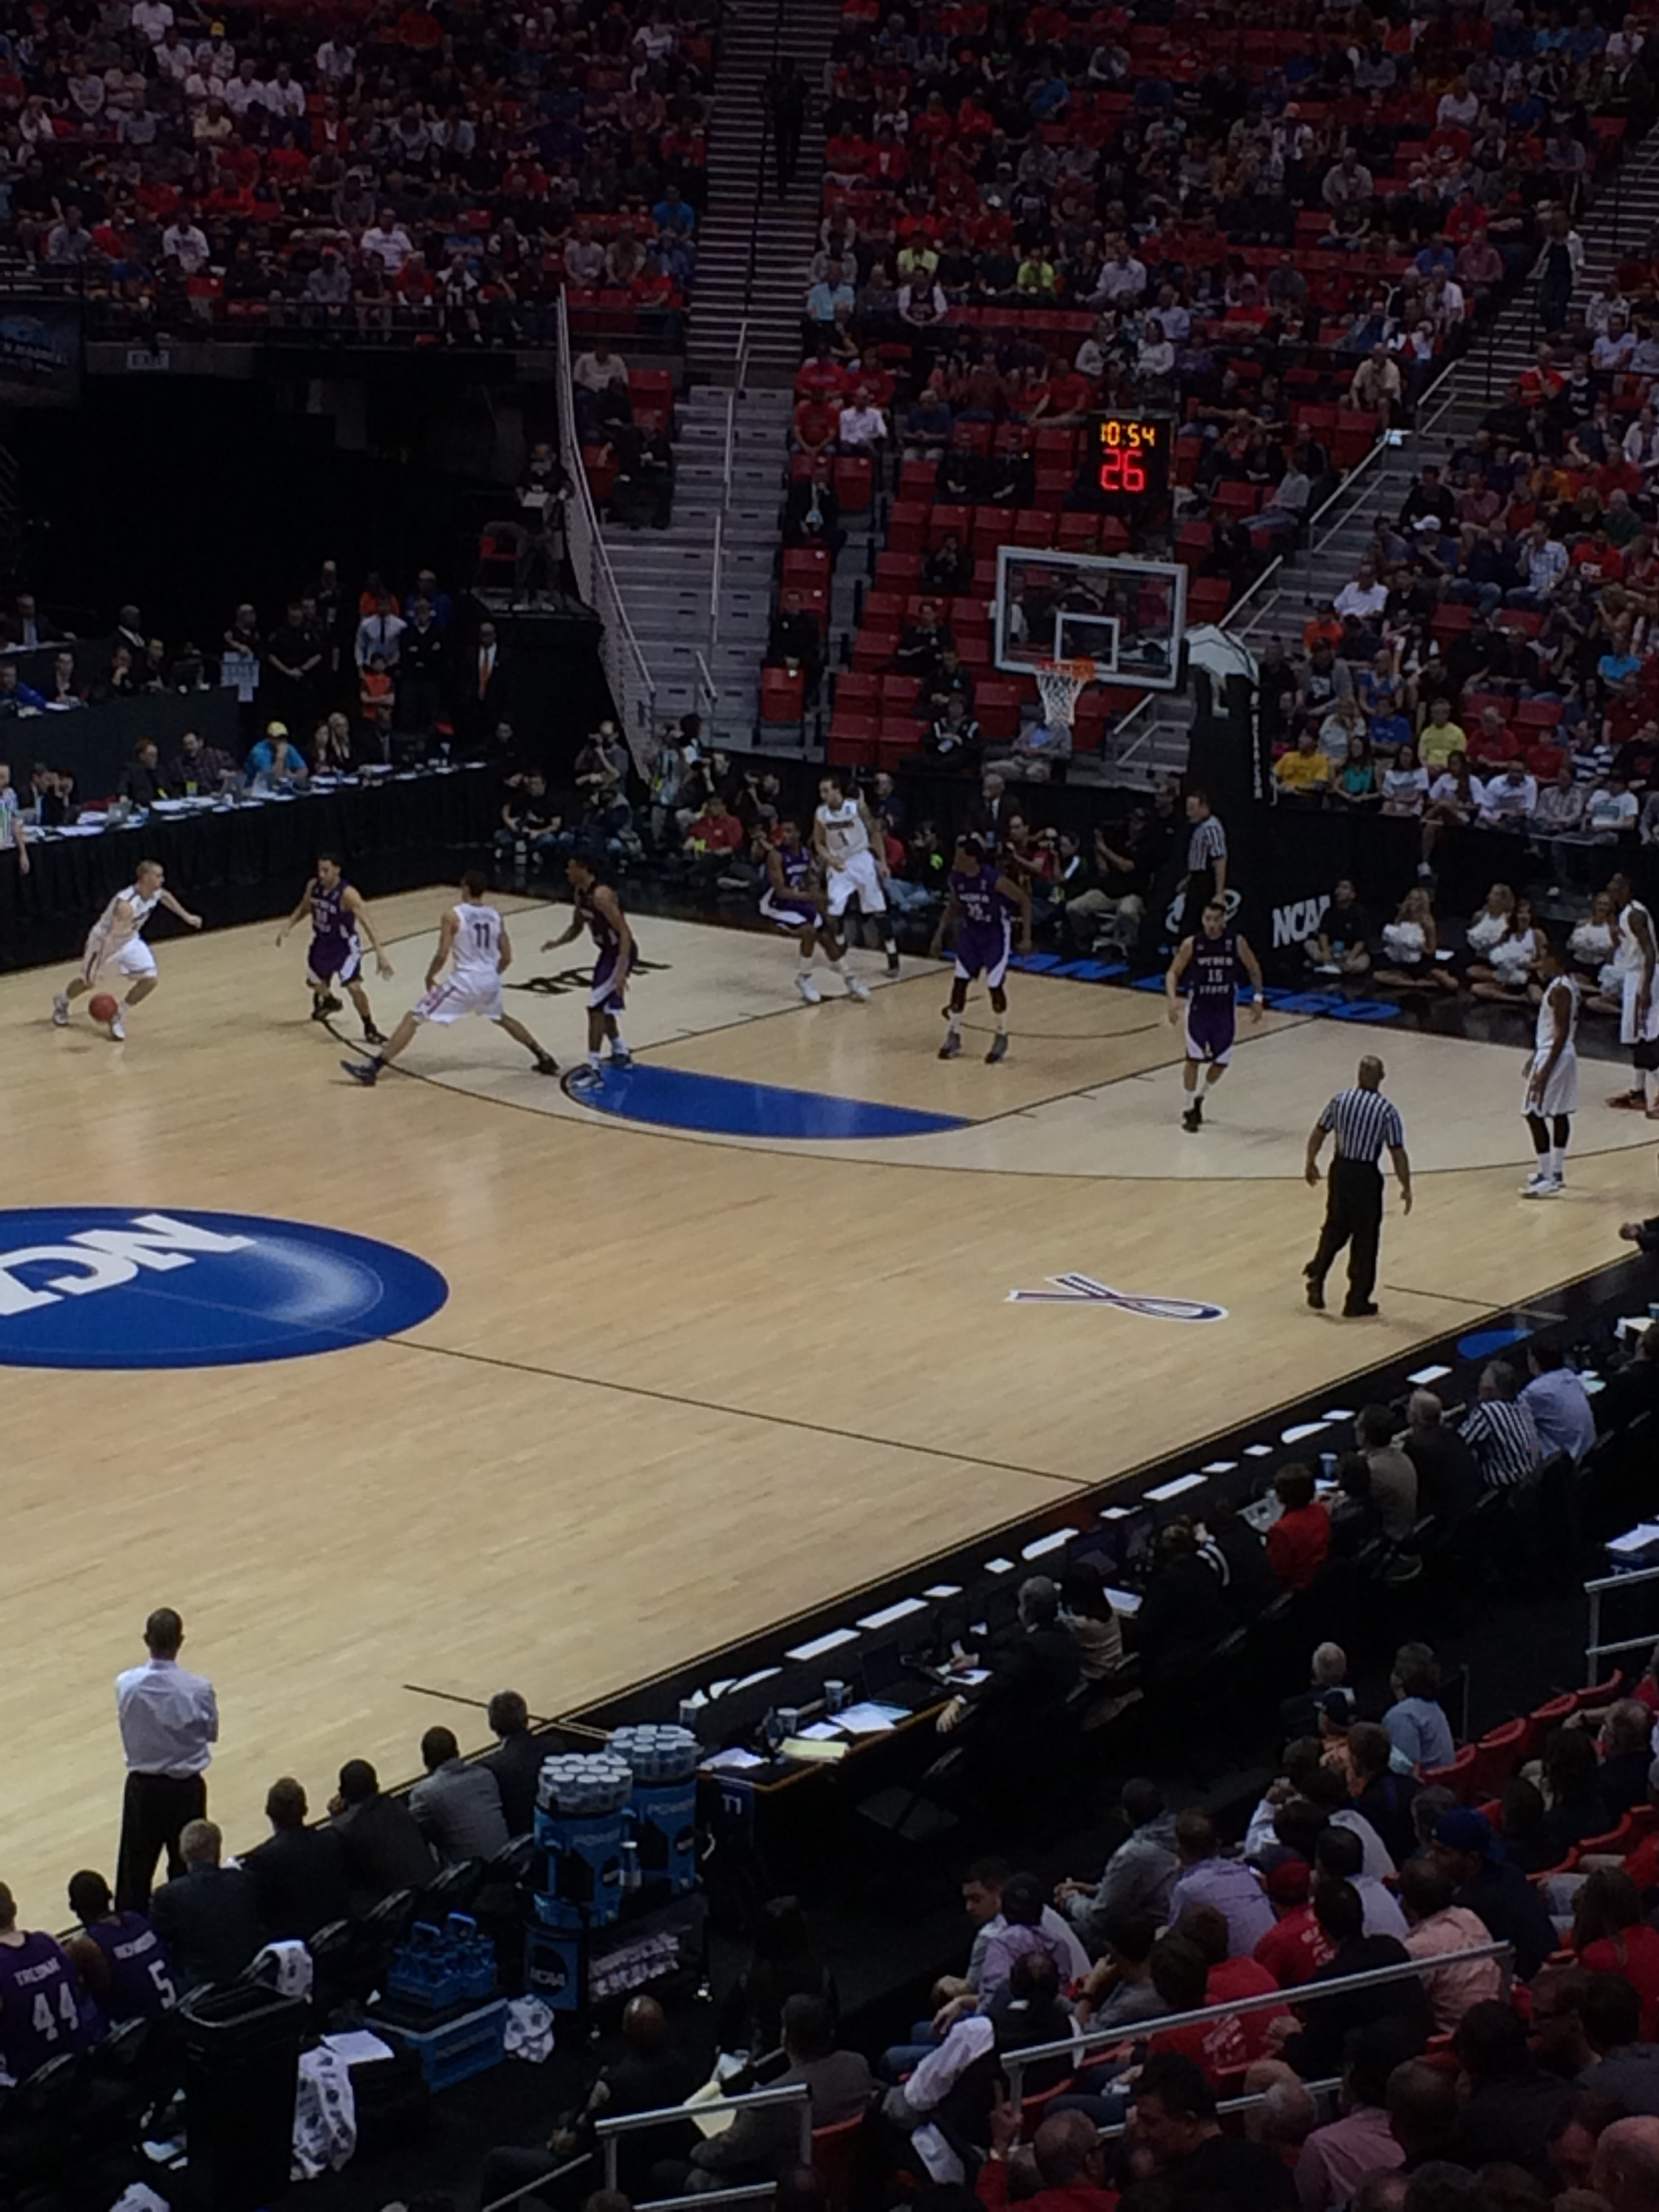 Student Taylor Messuri snapped this photo live from the game.